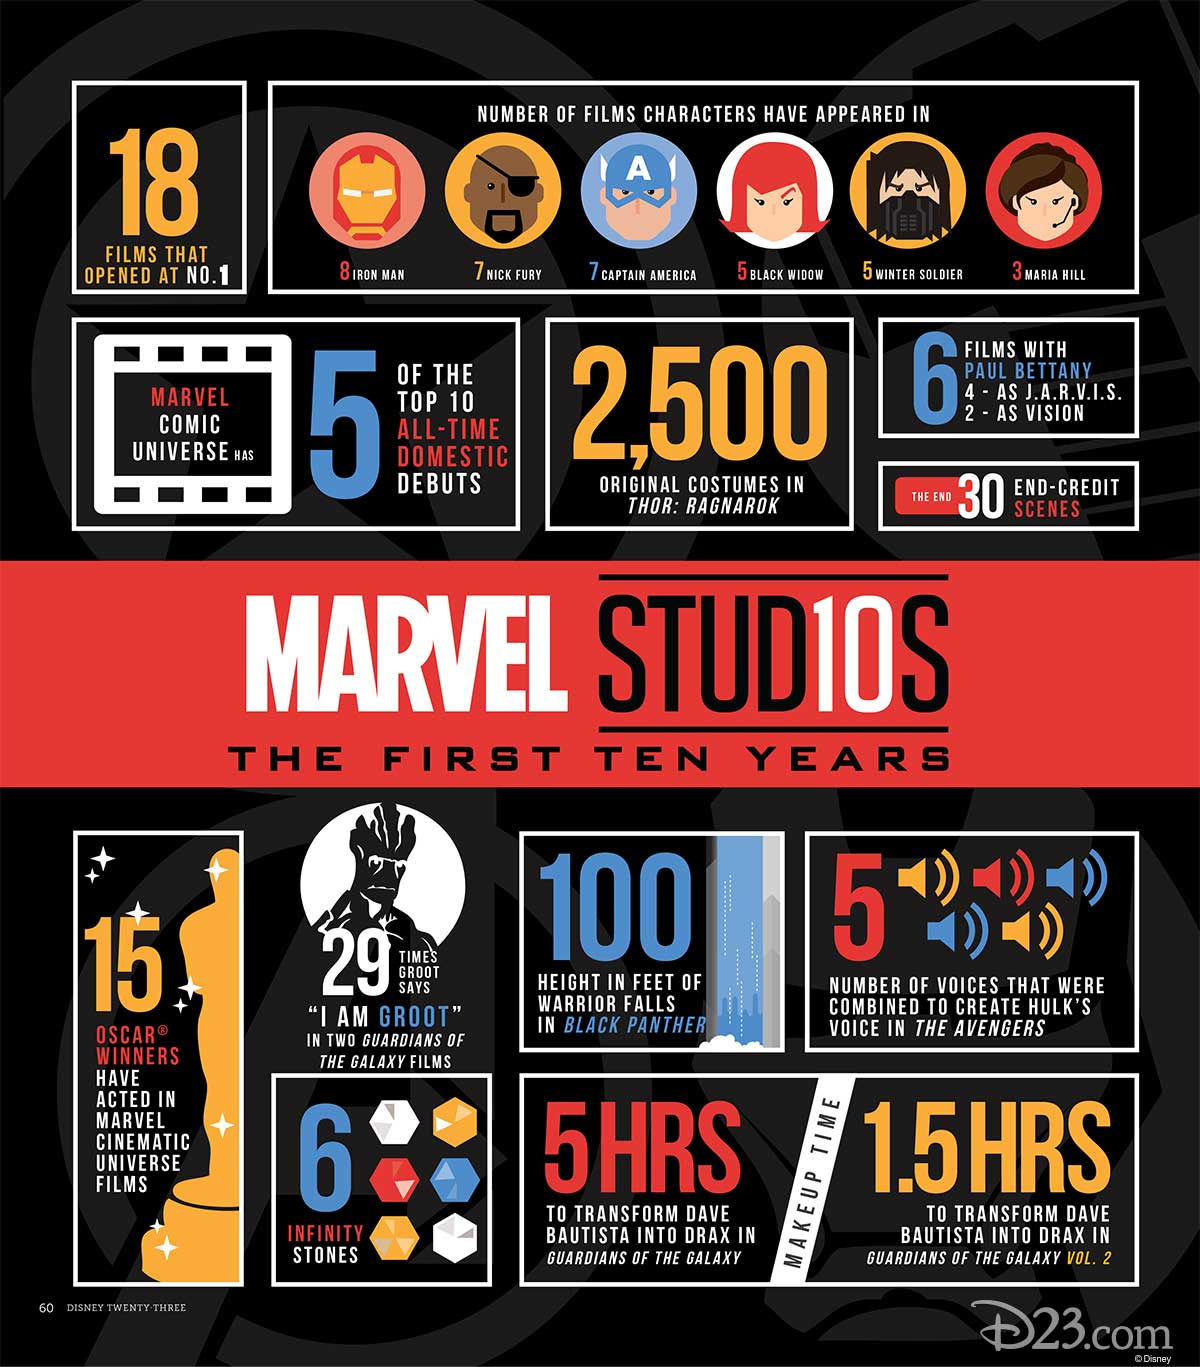 Disney twenty-three Summer 2018 Marvel Studios infographic